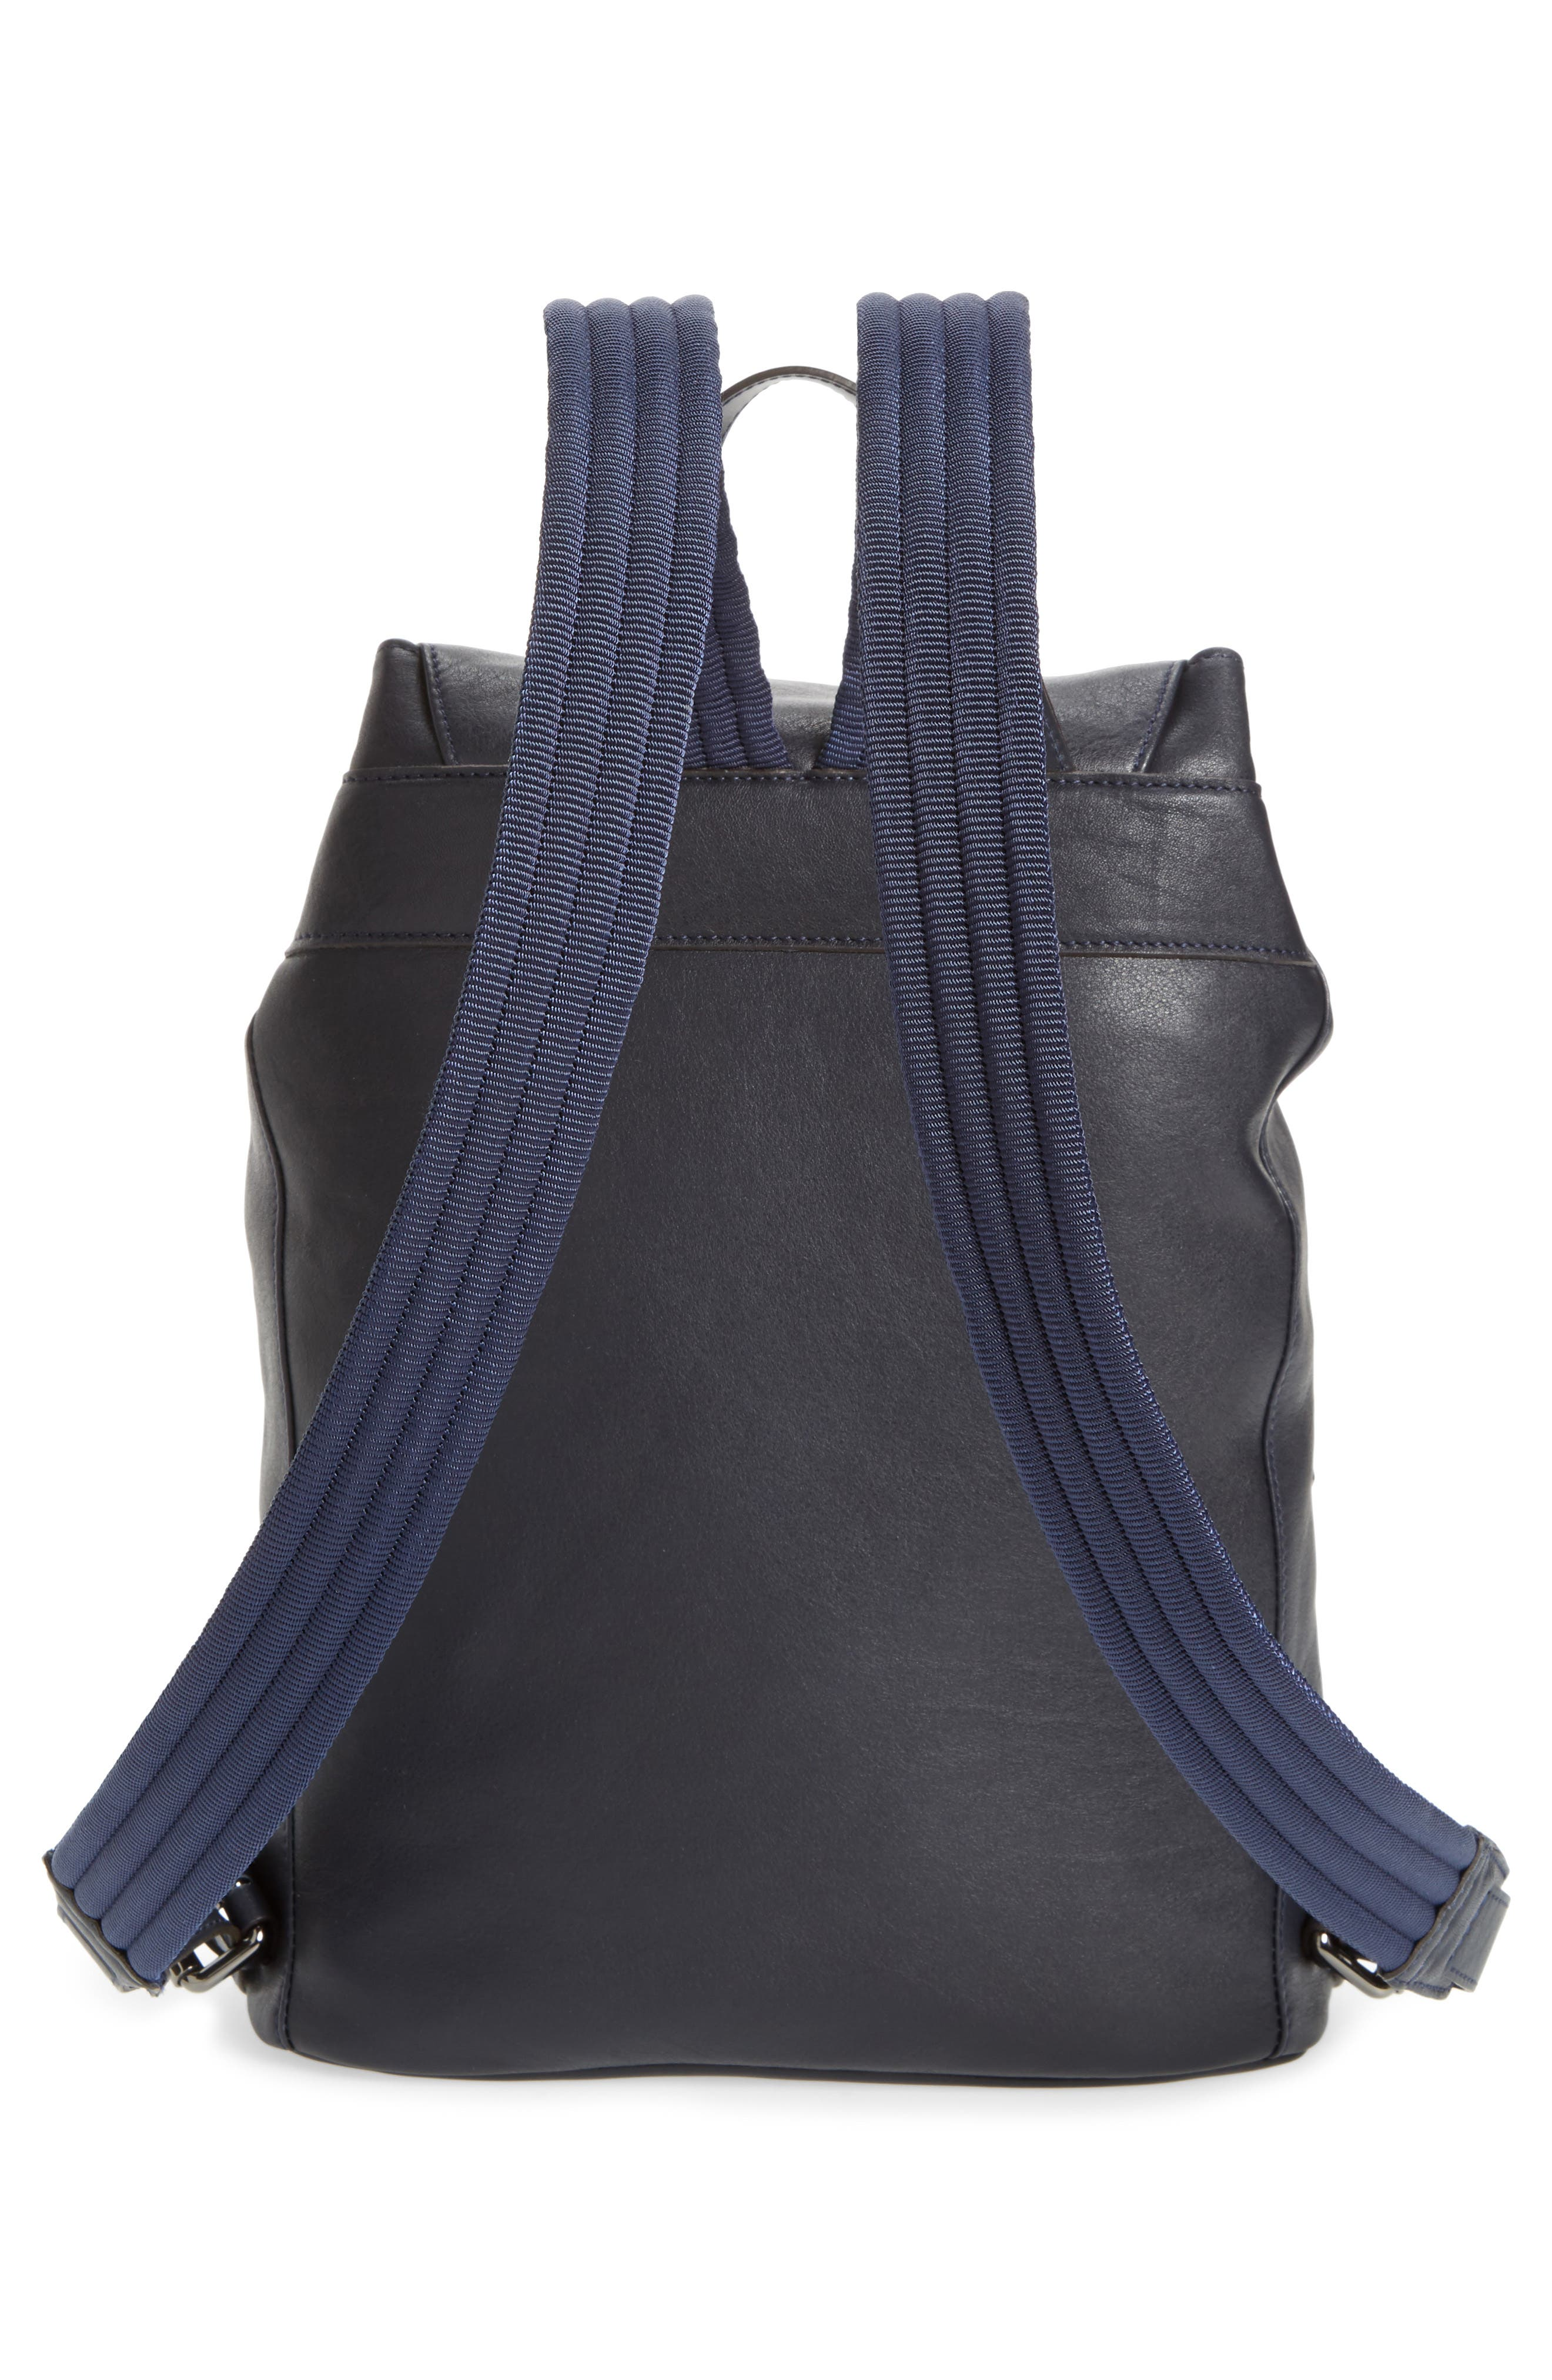 3D Leather Backpack,                             Alternate thumbnail 3, color,                             400